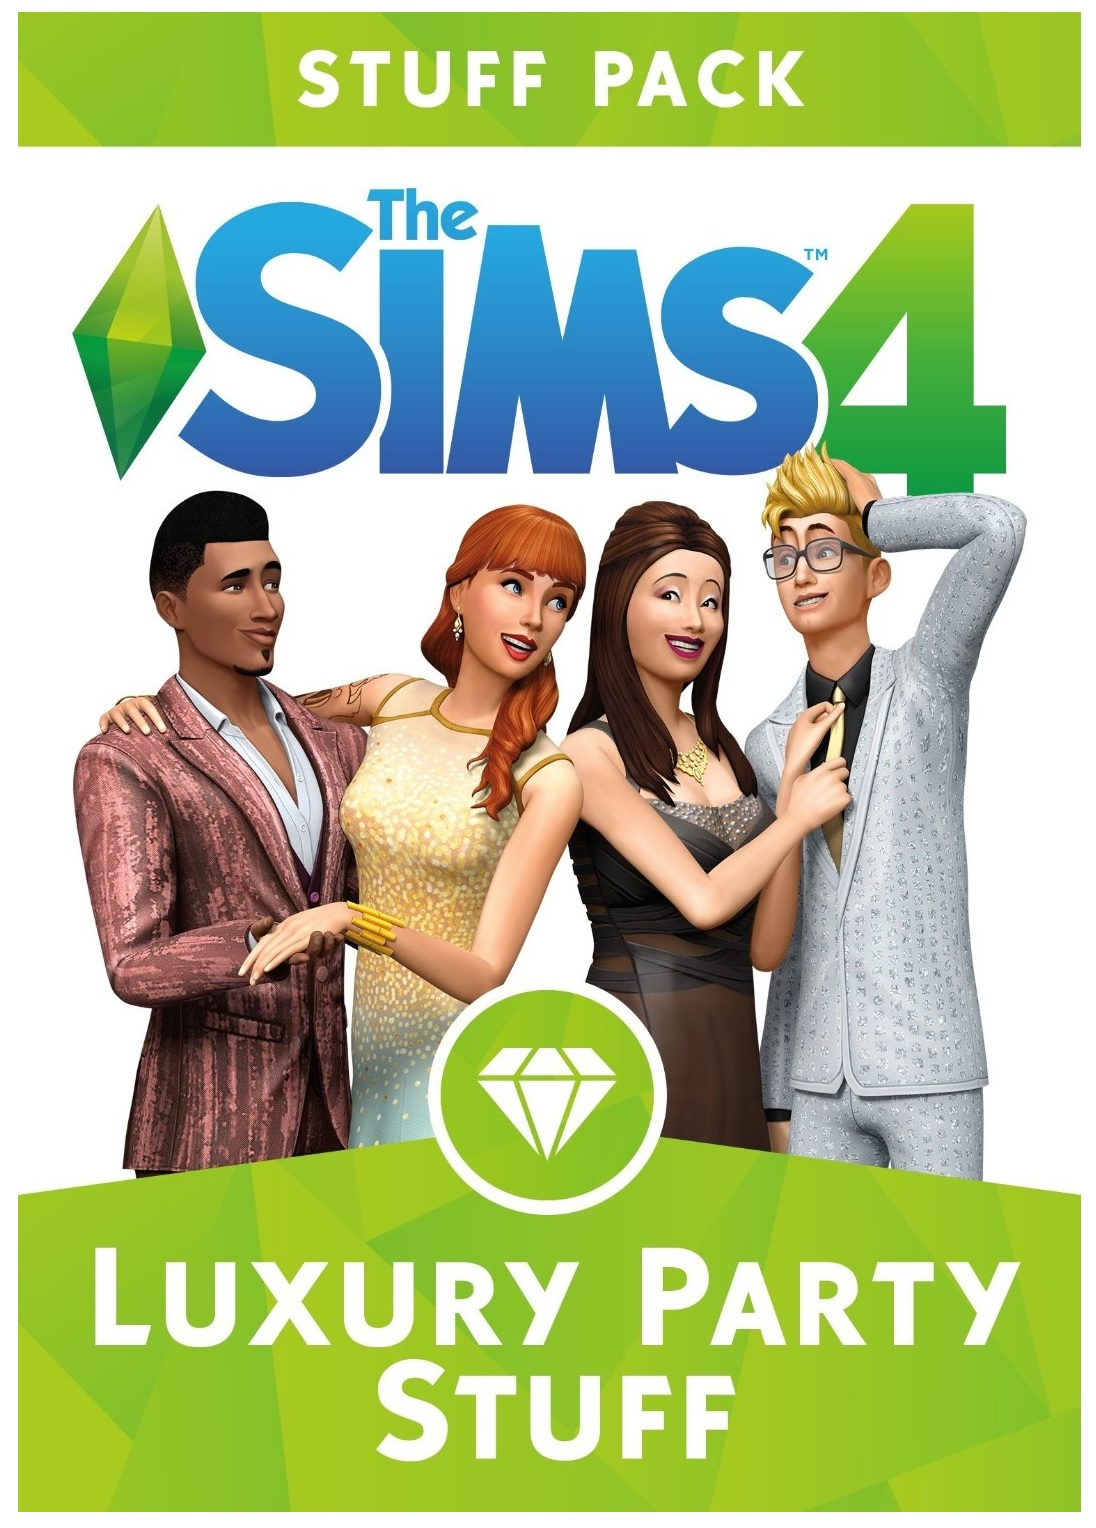 Electronic Arts The Sims 4 Luxury Party Stuff Pack PC Game